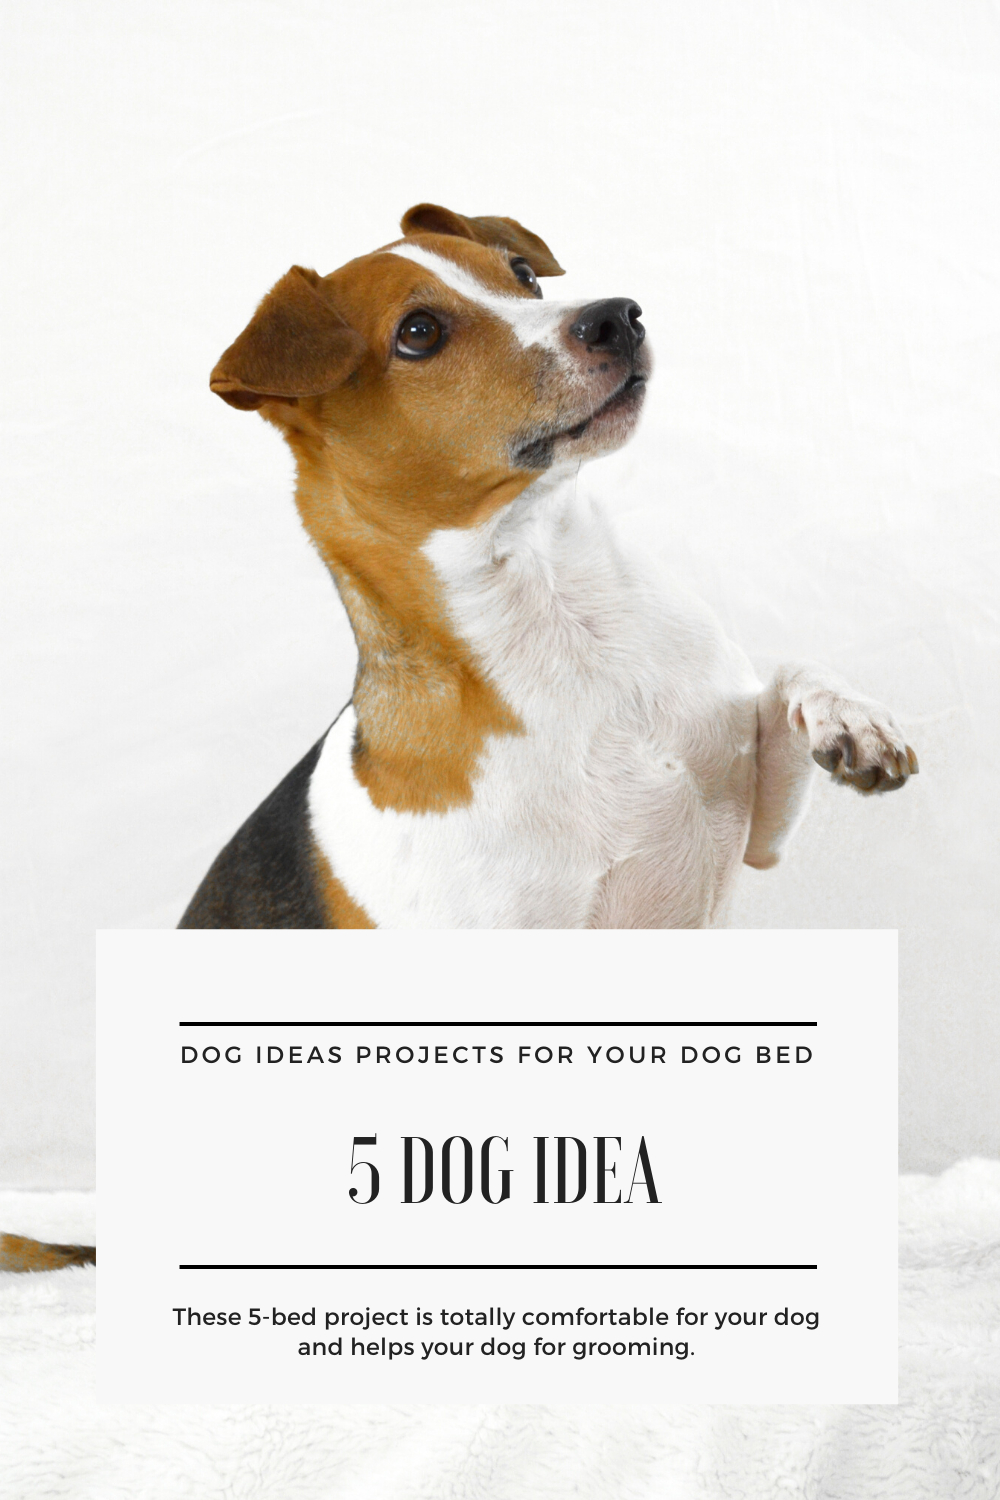 5 Best Bed Dog Idea Projects In 2020 Dog Spay Dog Health Dogs